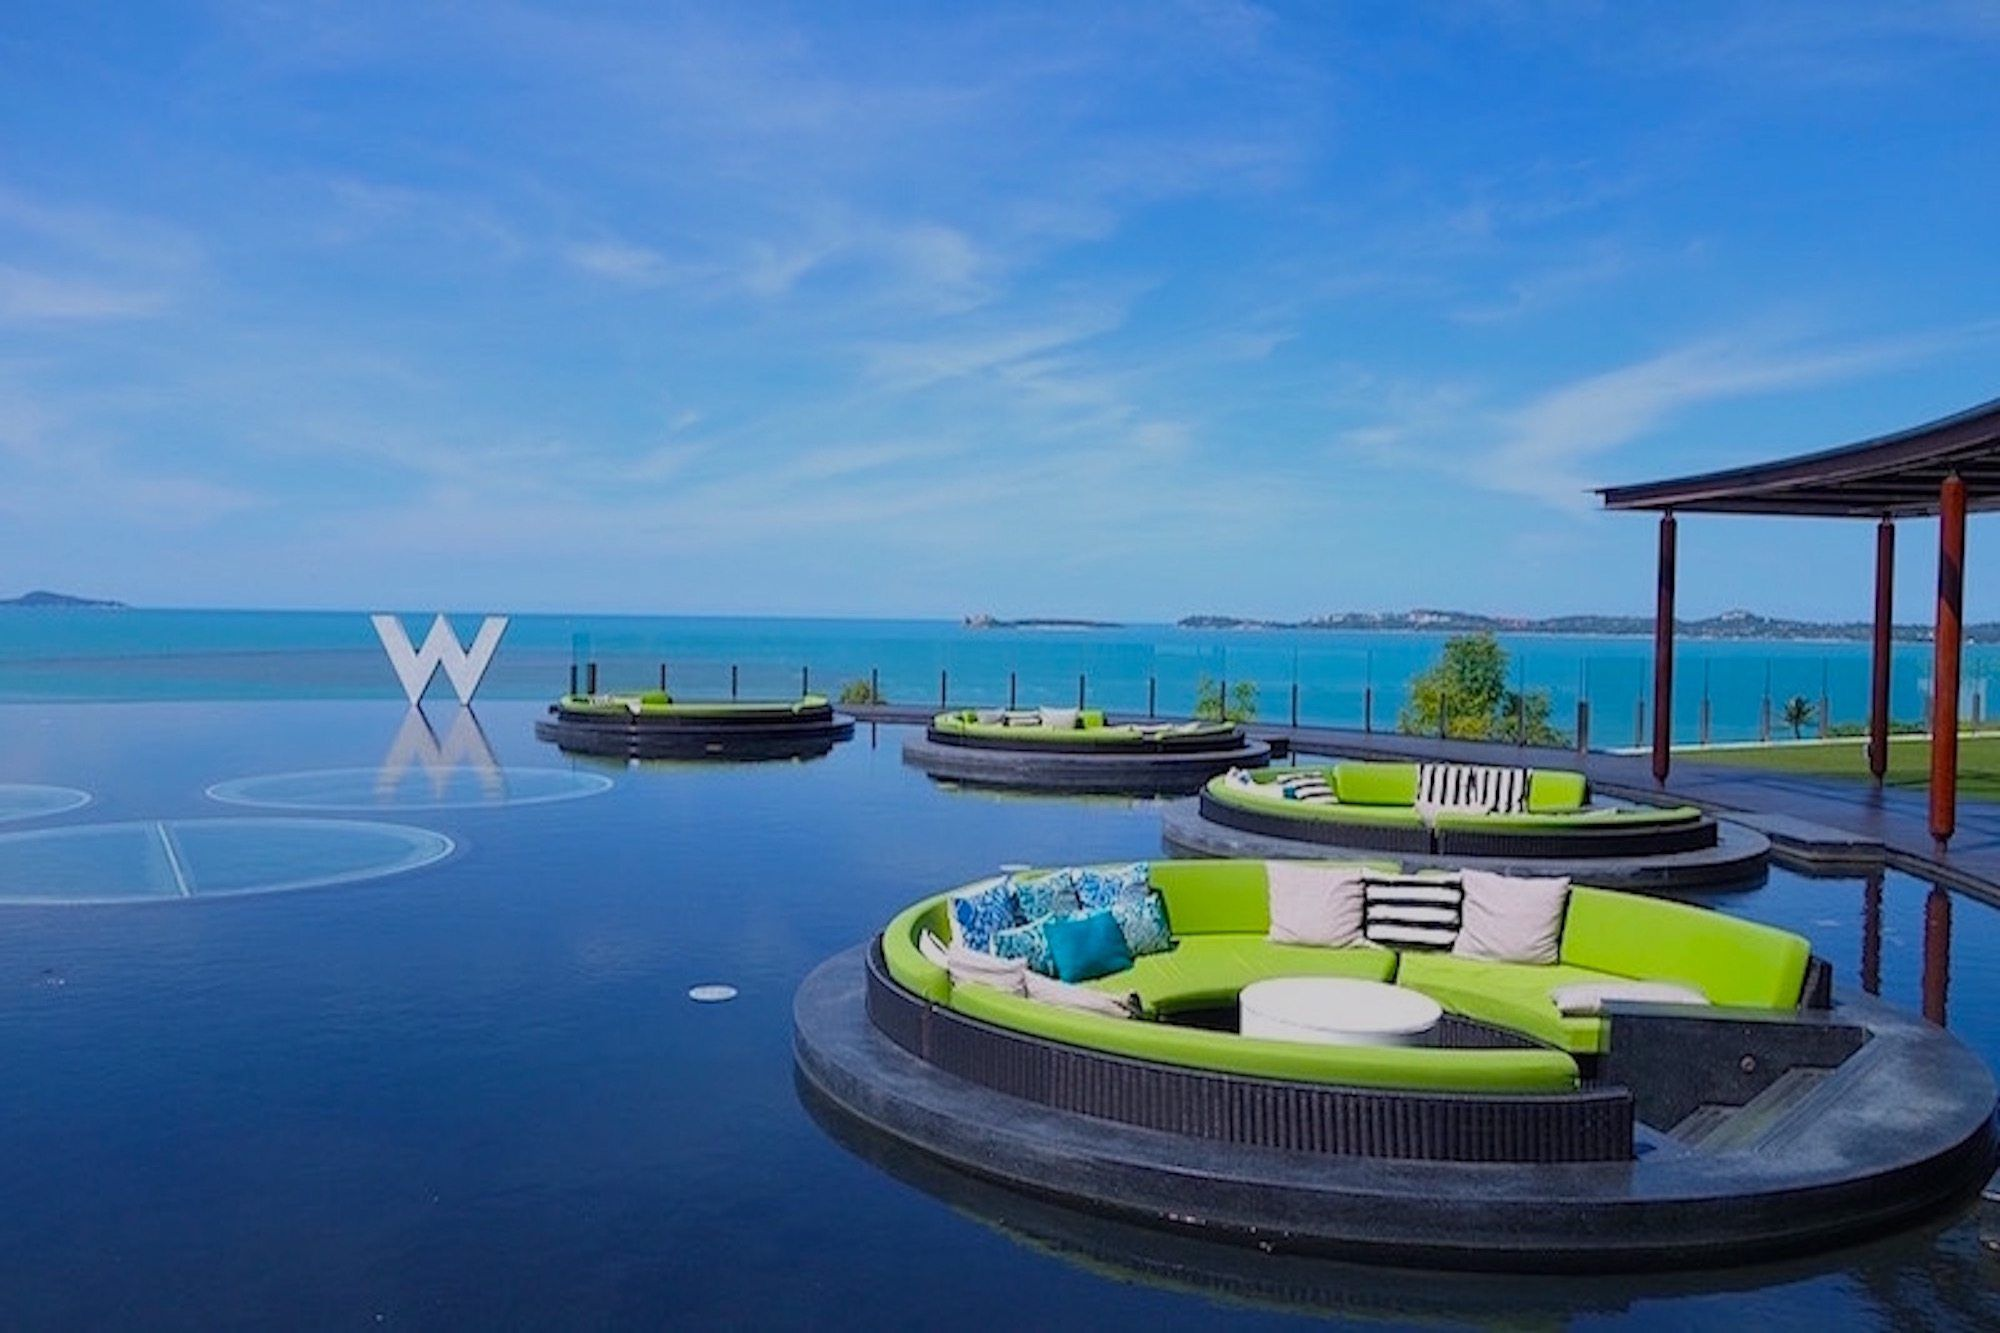 Best Beach Clubs in Koh Samui | Ministry of Villas | Koh samui beach, Koh samui thailand, Koh samui